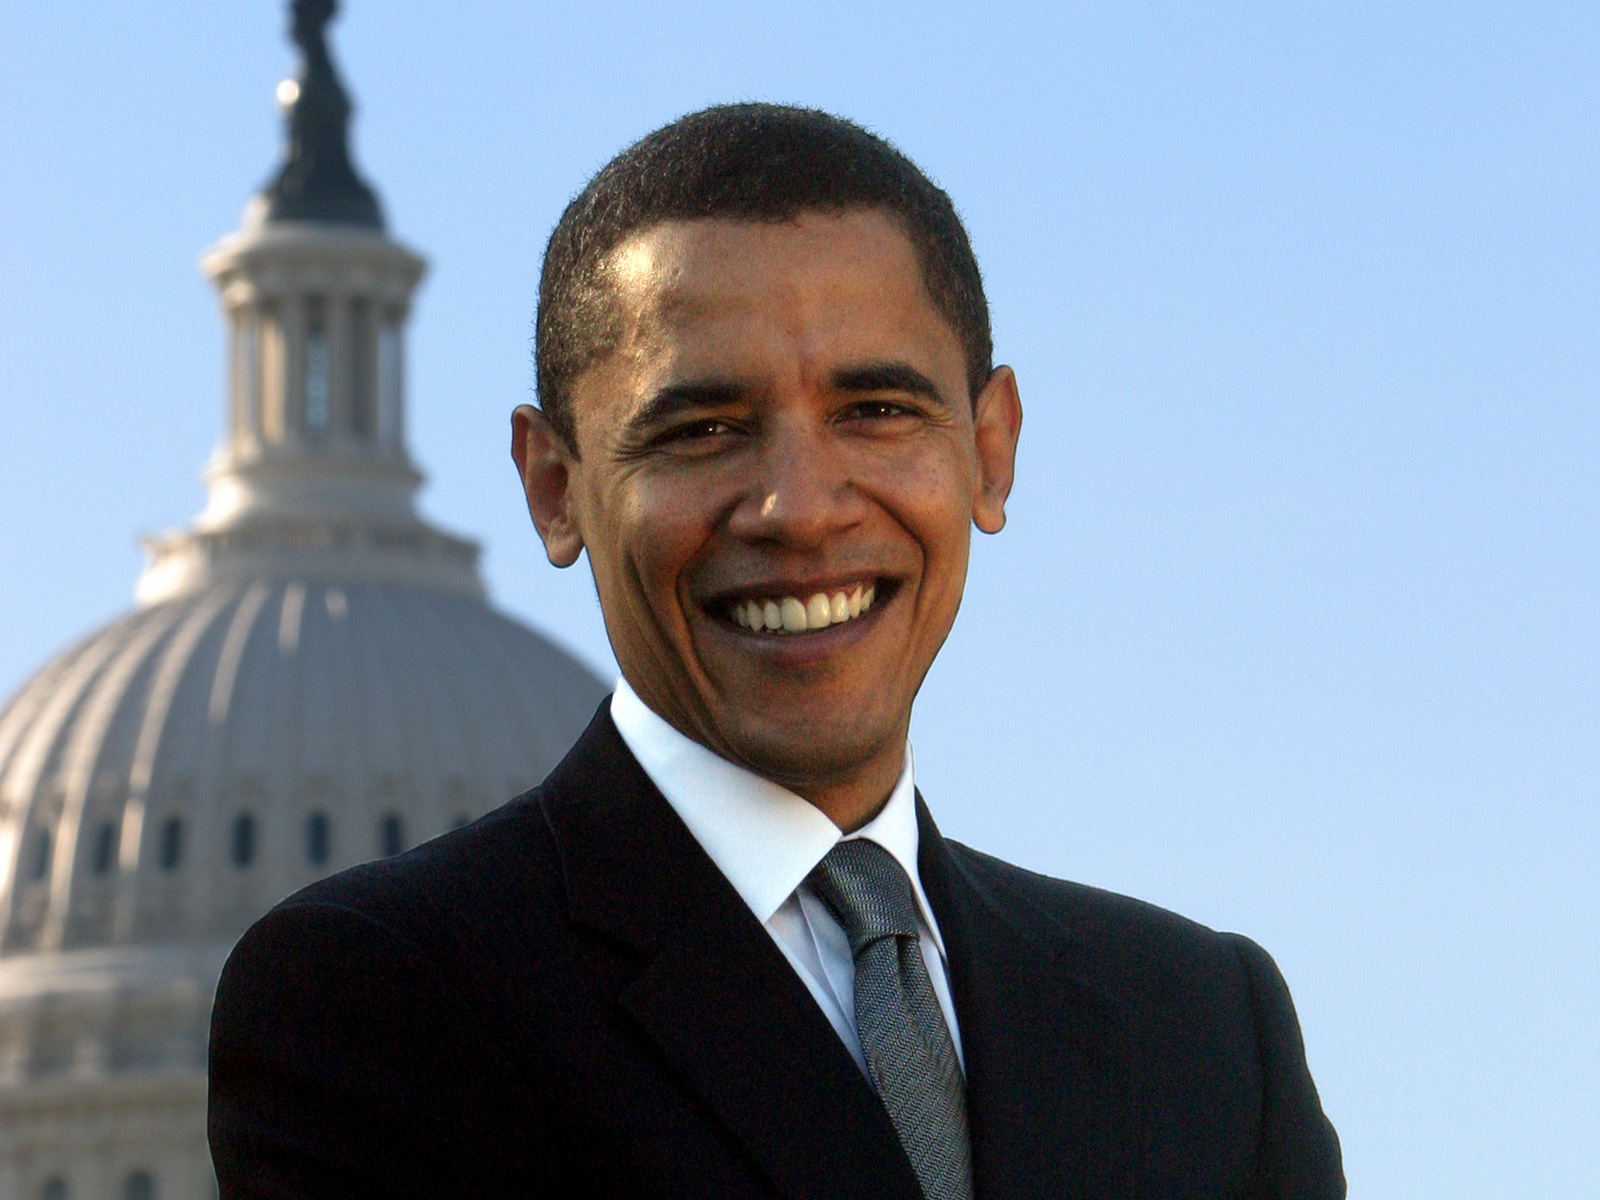 Barack Obama Inauguration Speech Essay